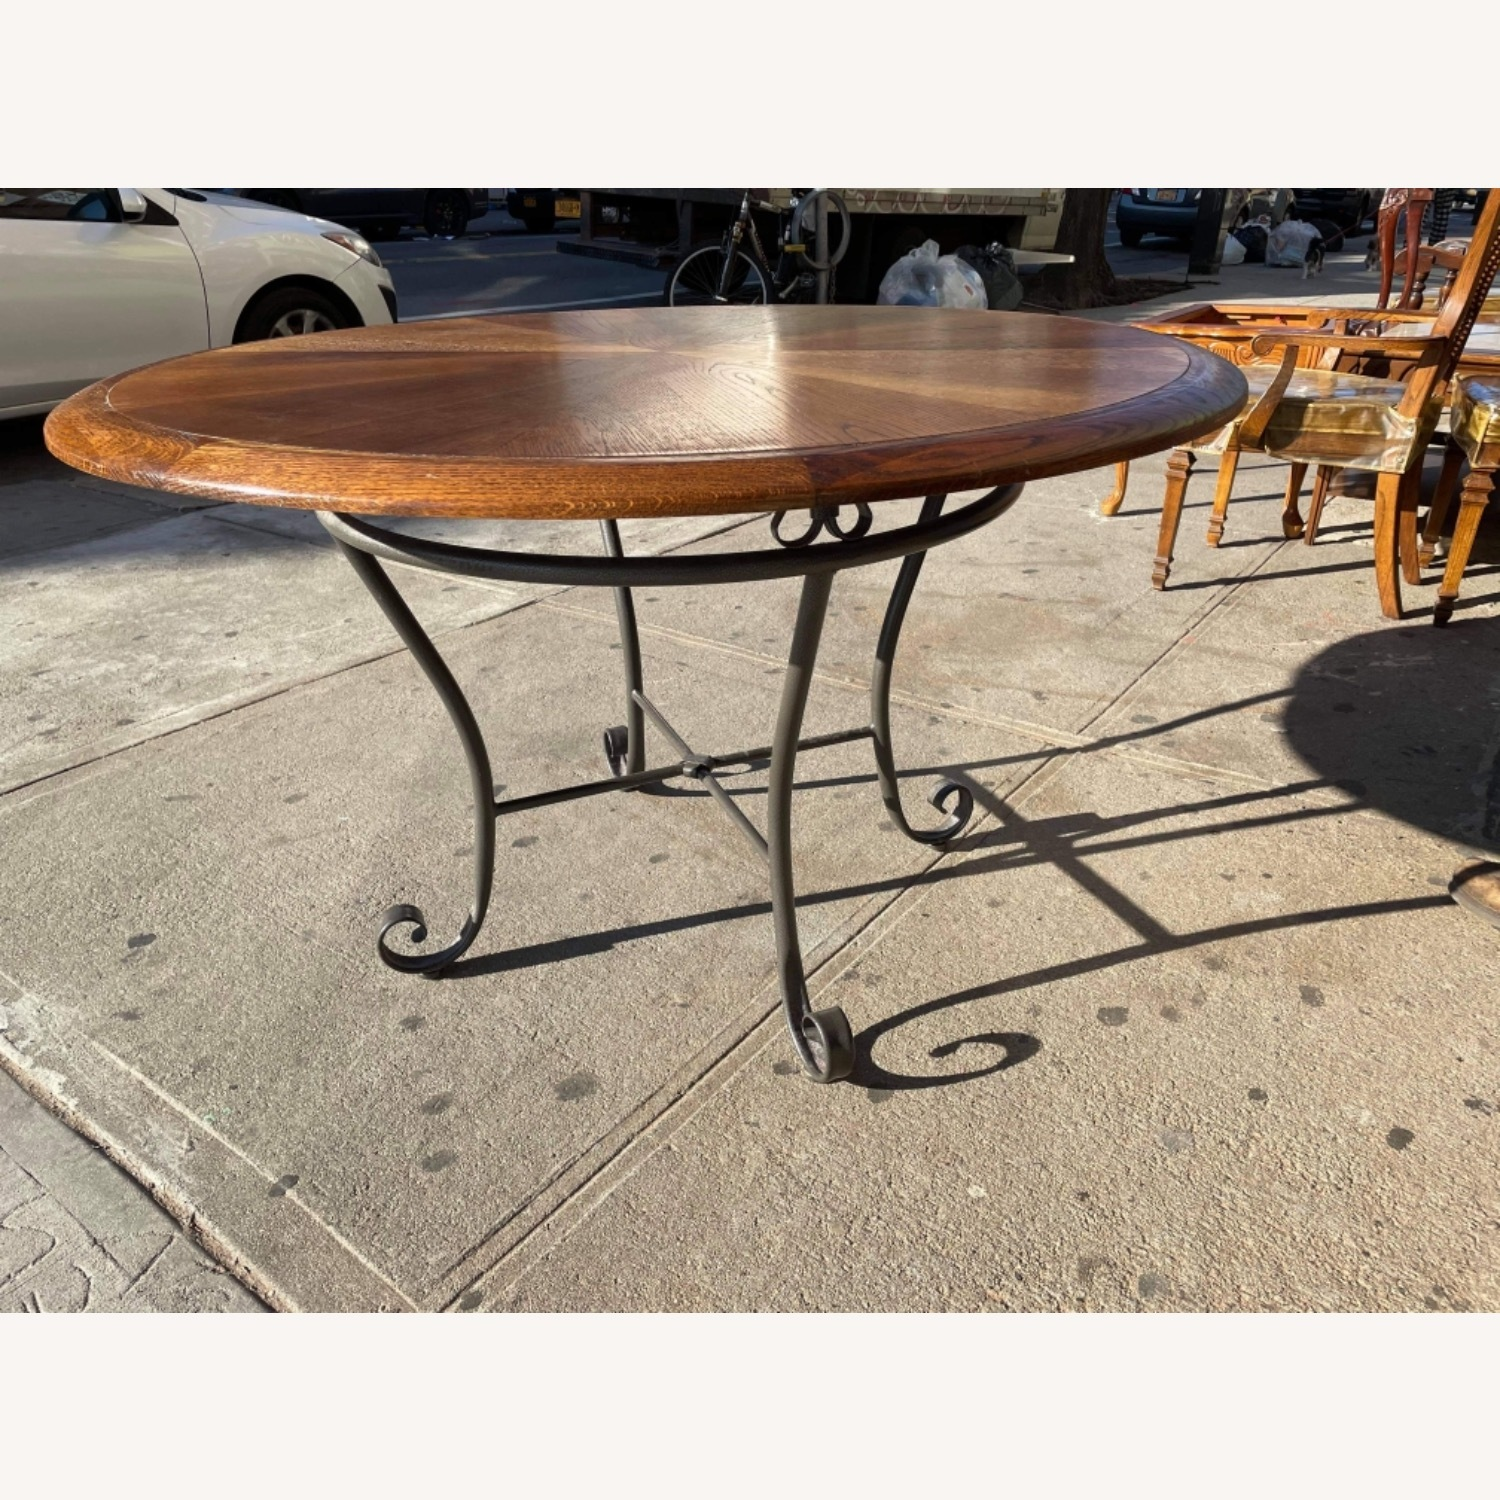 Vintage 1970s Wood & Metal Round Table - image-4